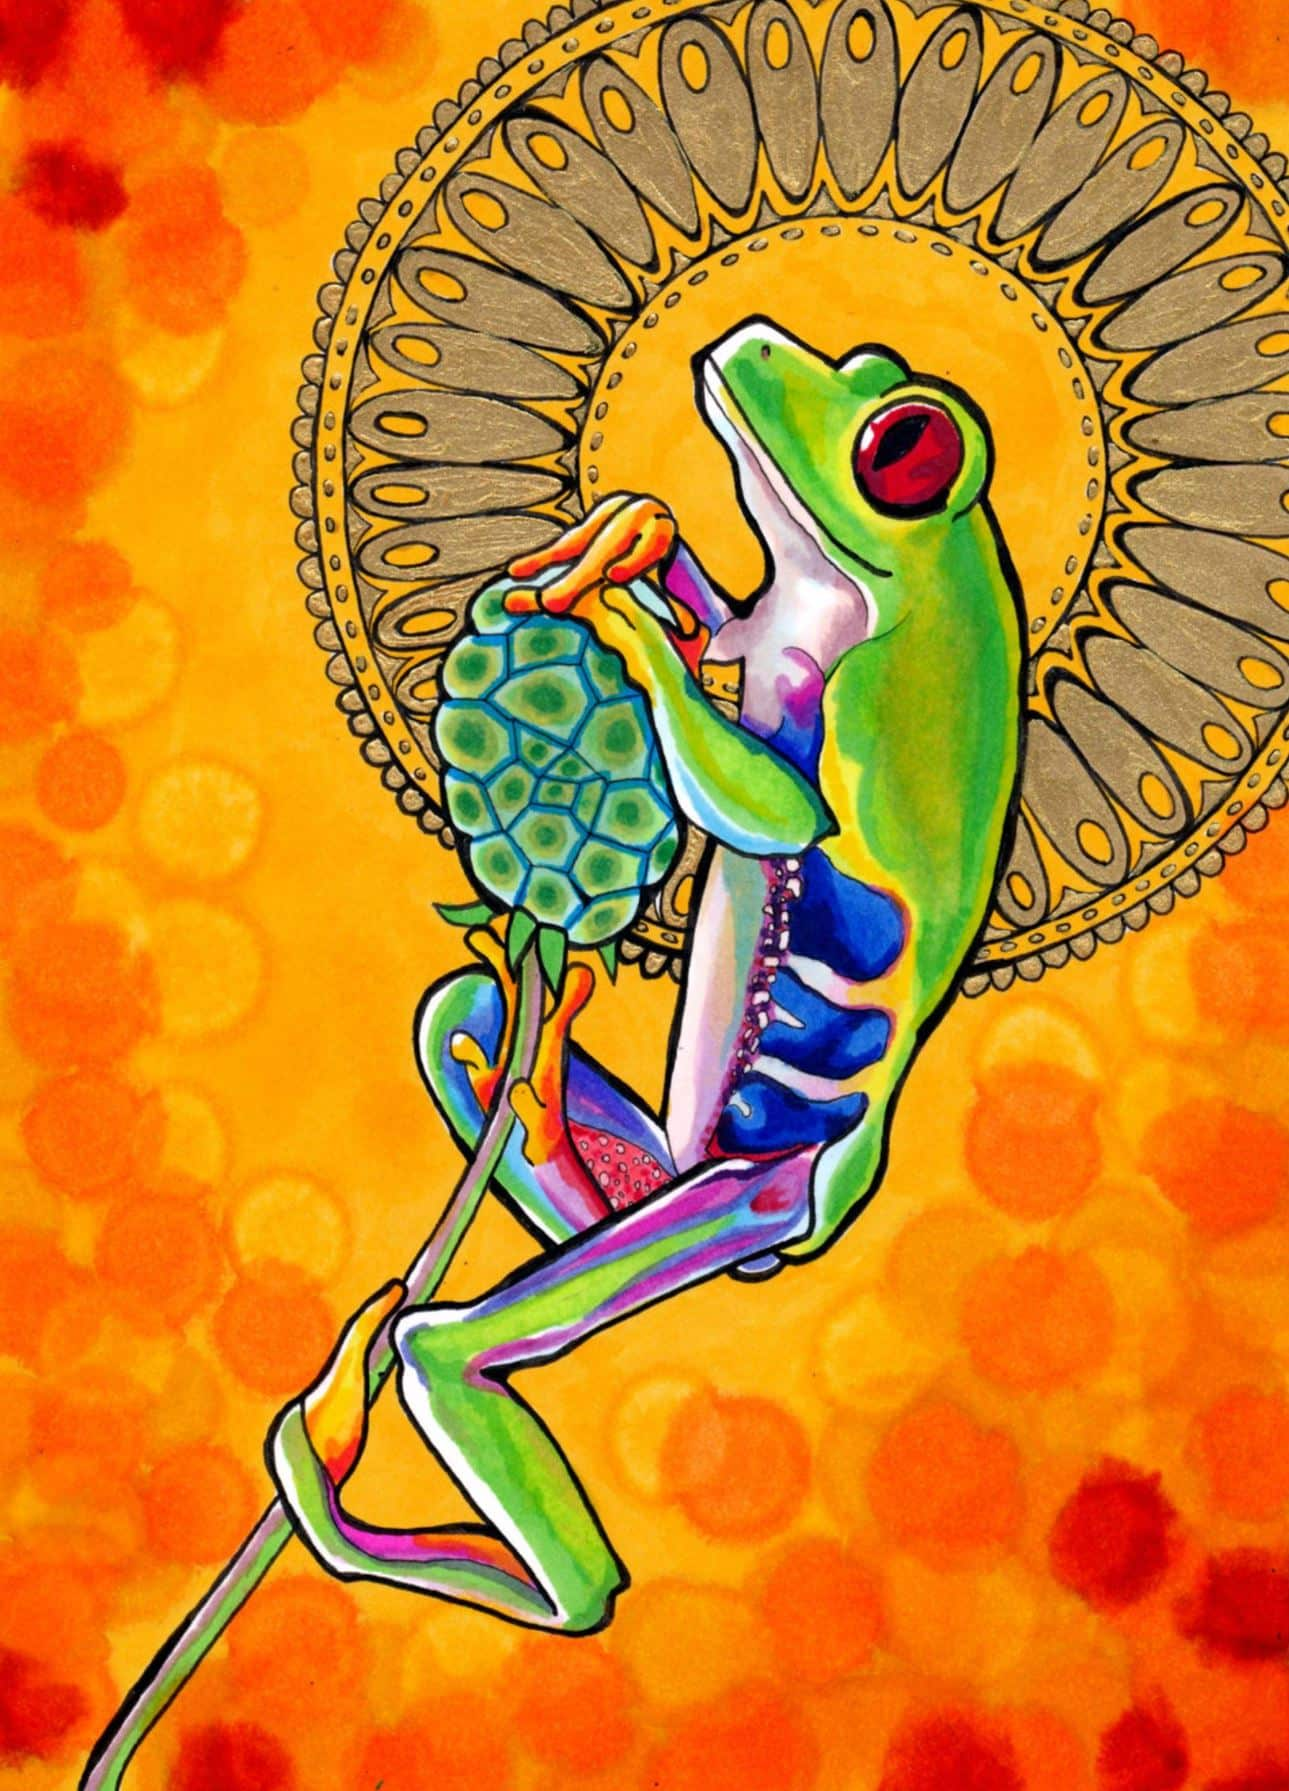 Psychedelic tree frog